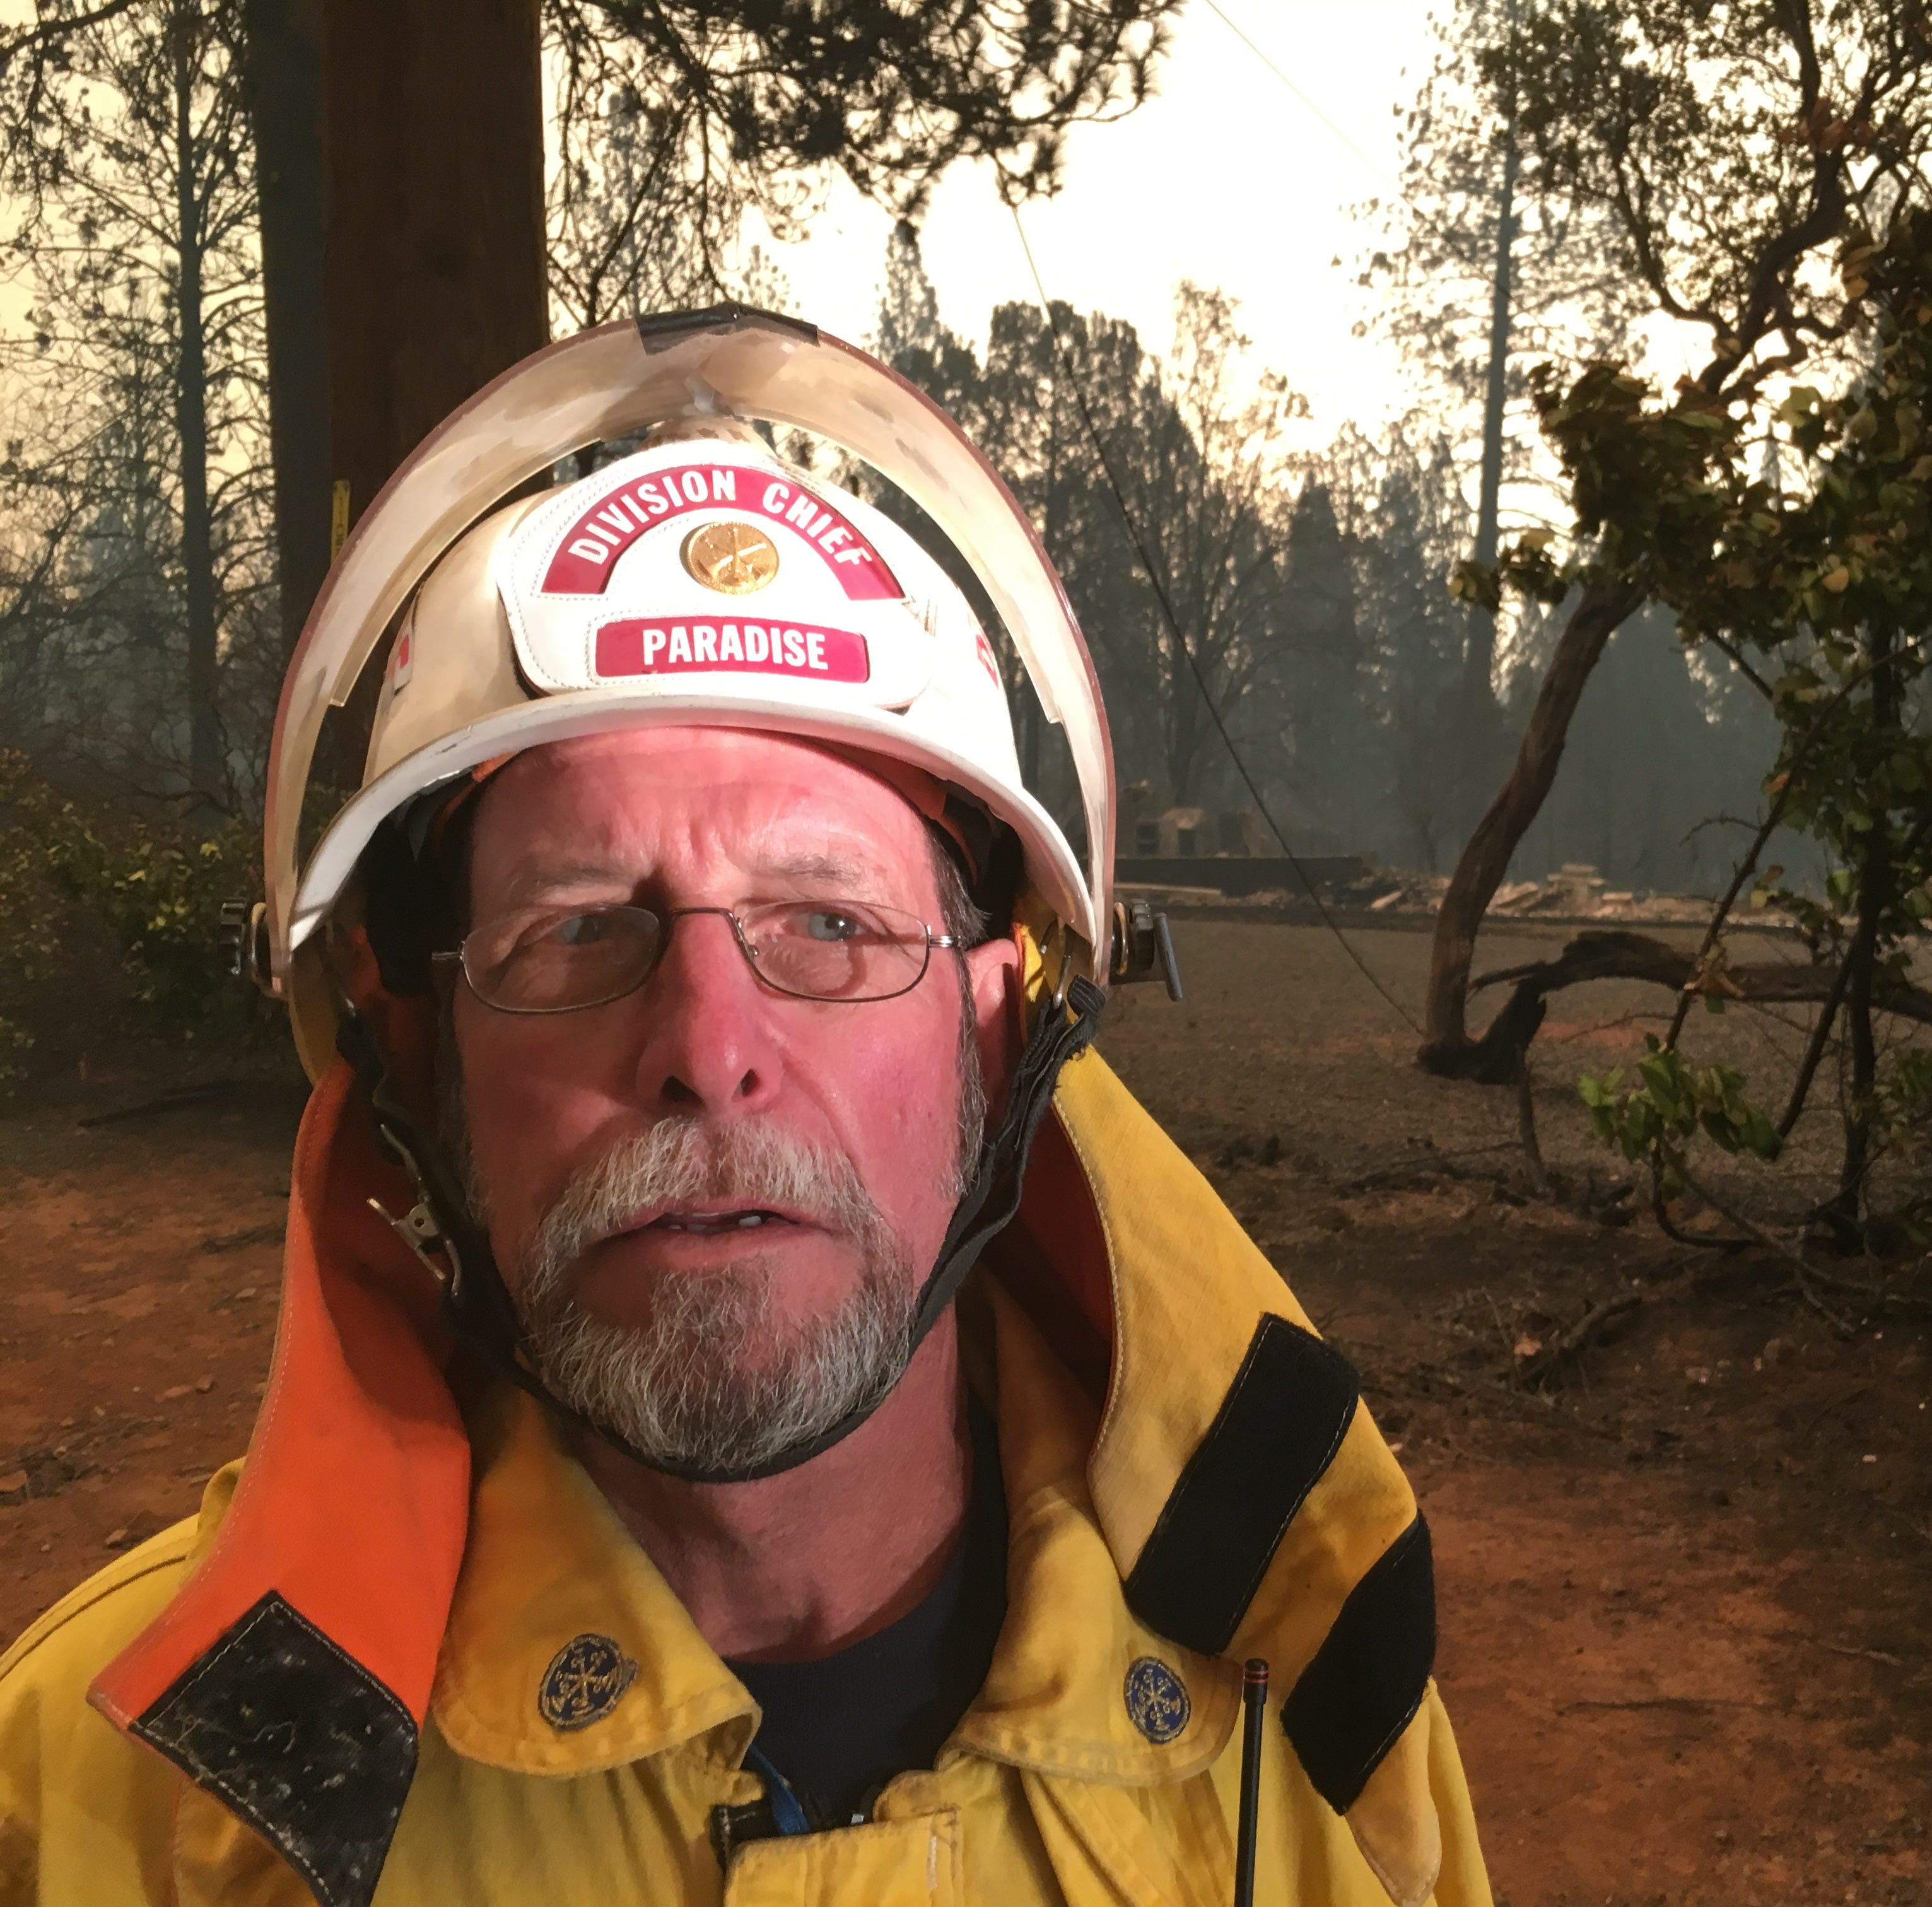 Camp Fire outran even the most seasoned: 'I'm about ready to lose it'